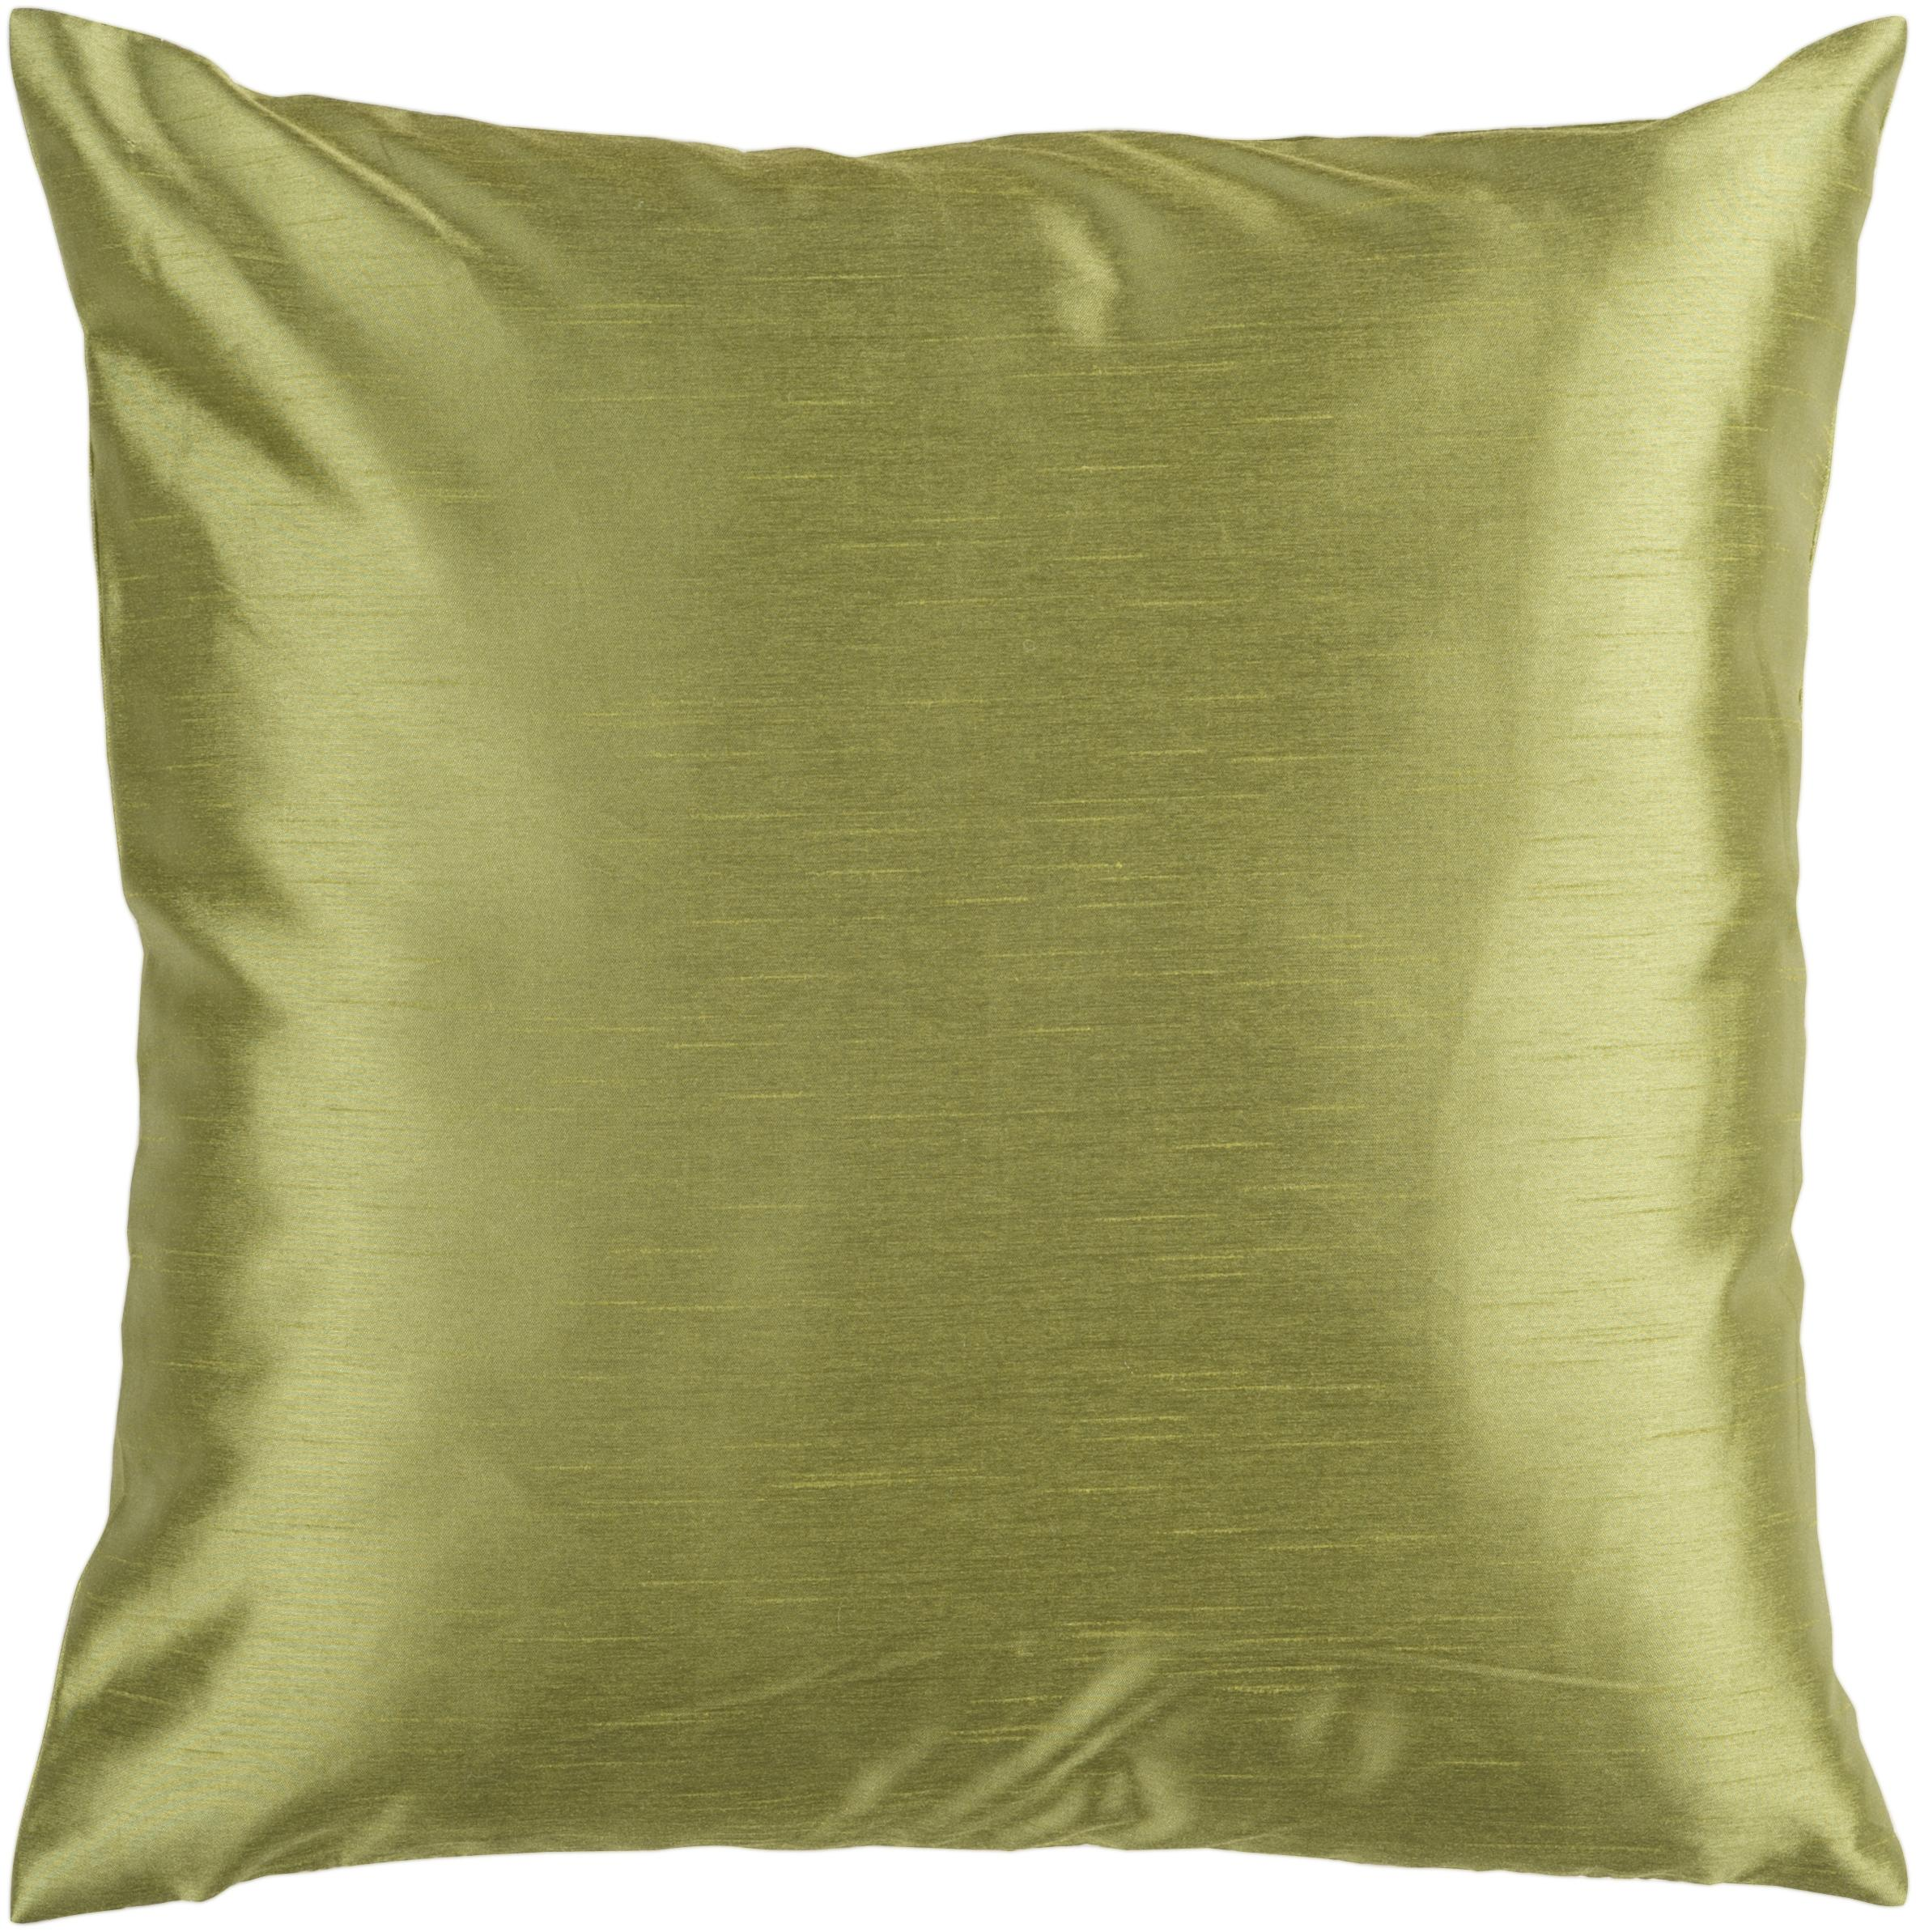 "Surya Rugs Pillows 18"" x 18"" Pillow - Item Number: HH043-1818P"